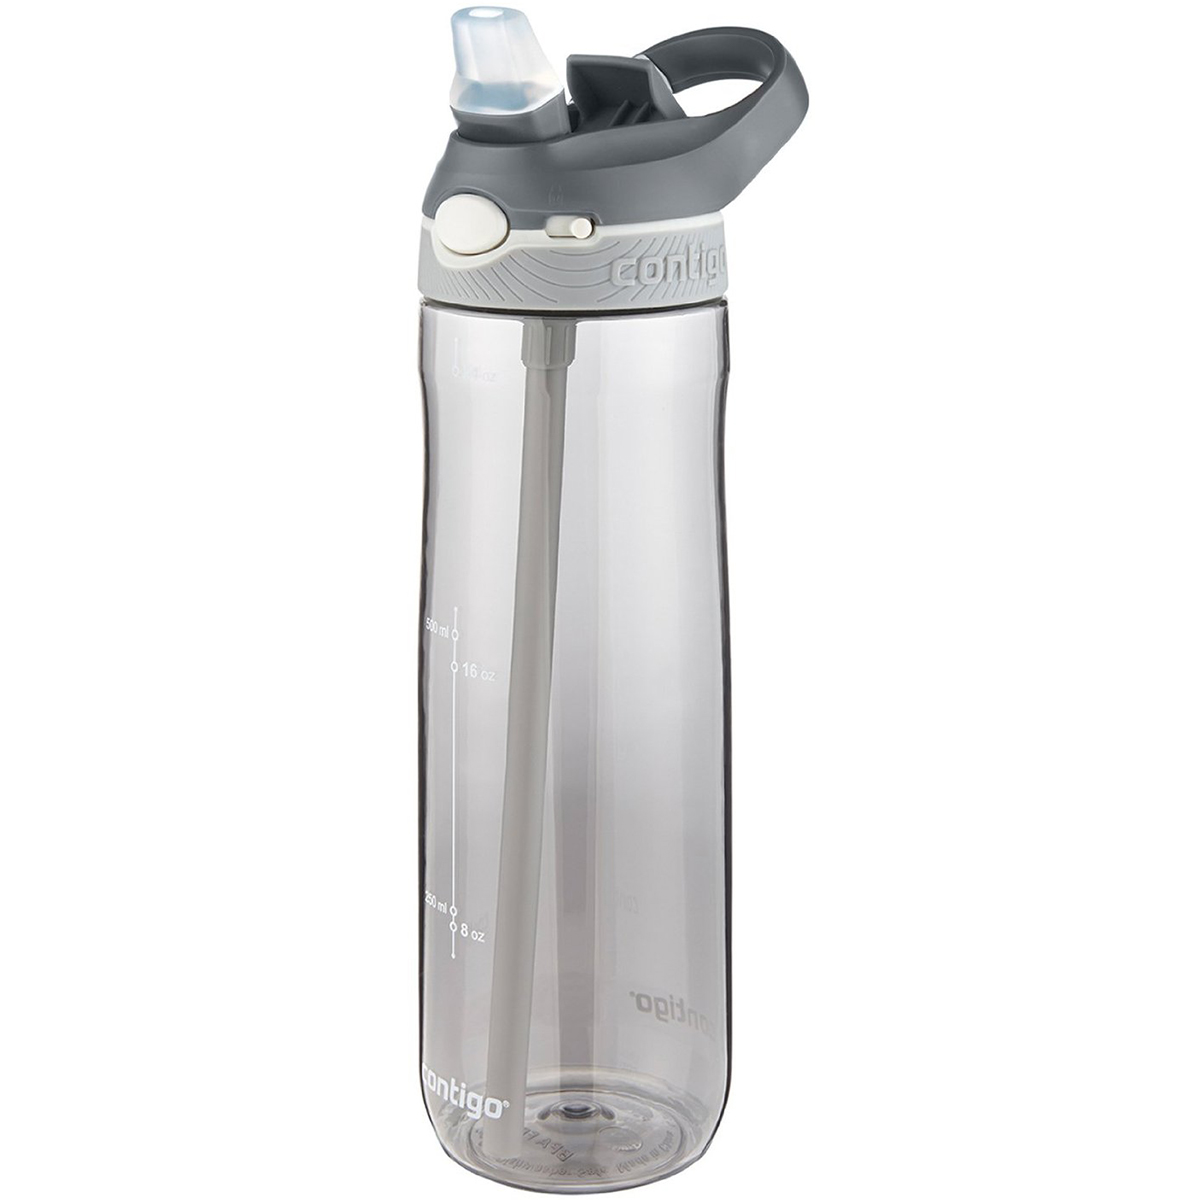 Contigo-24-oz-Ashland-Autospout-Water-Bottle miniature 25